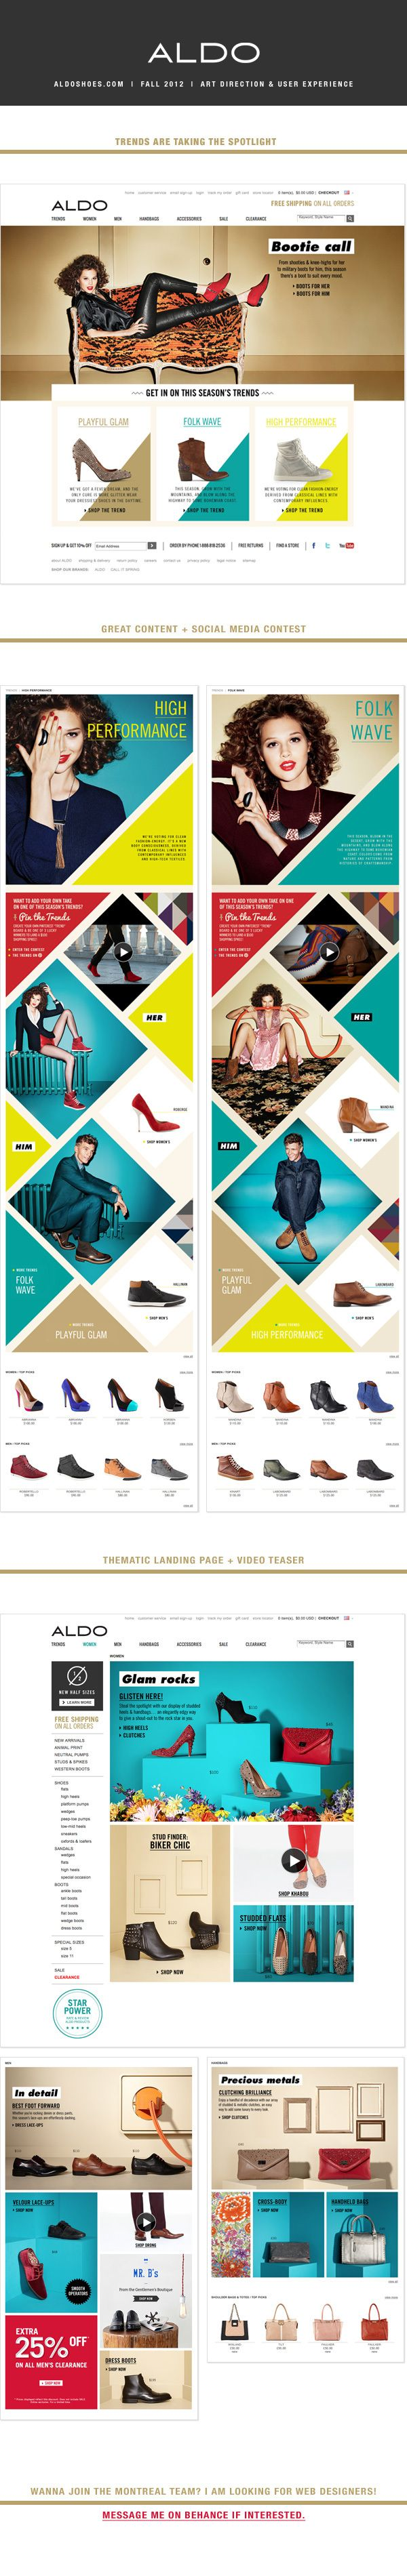 aldoshoes.com by Maya Rioux, via Behance